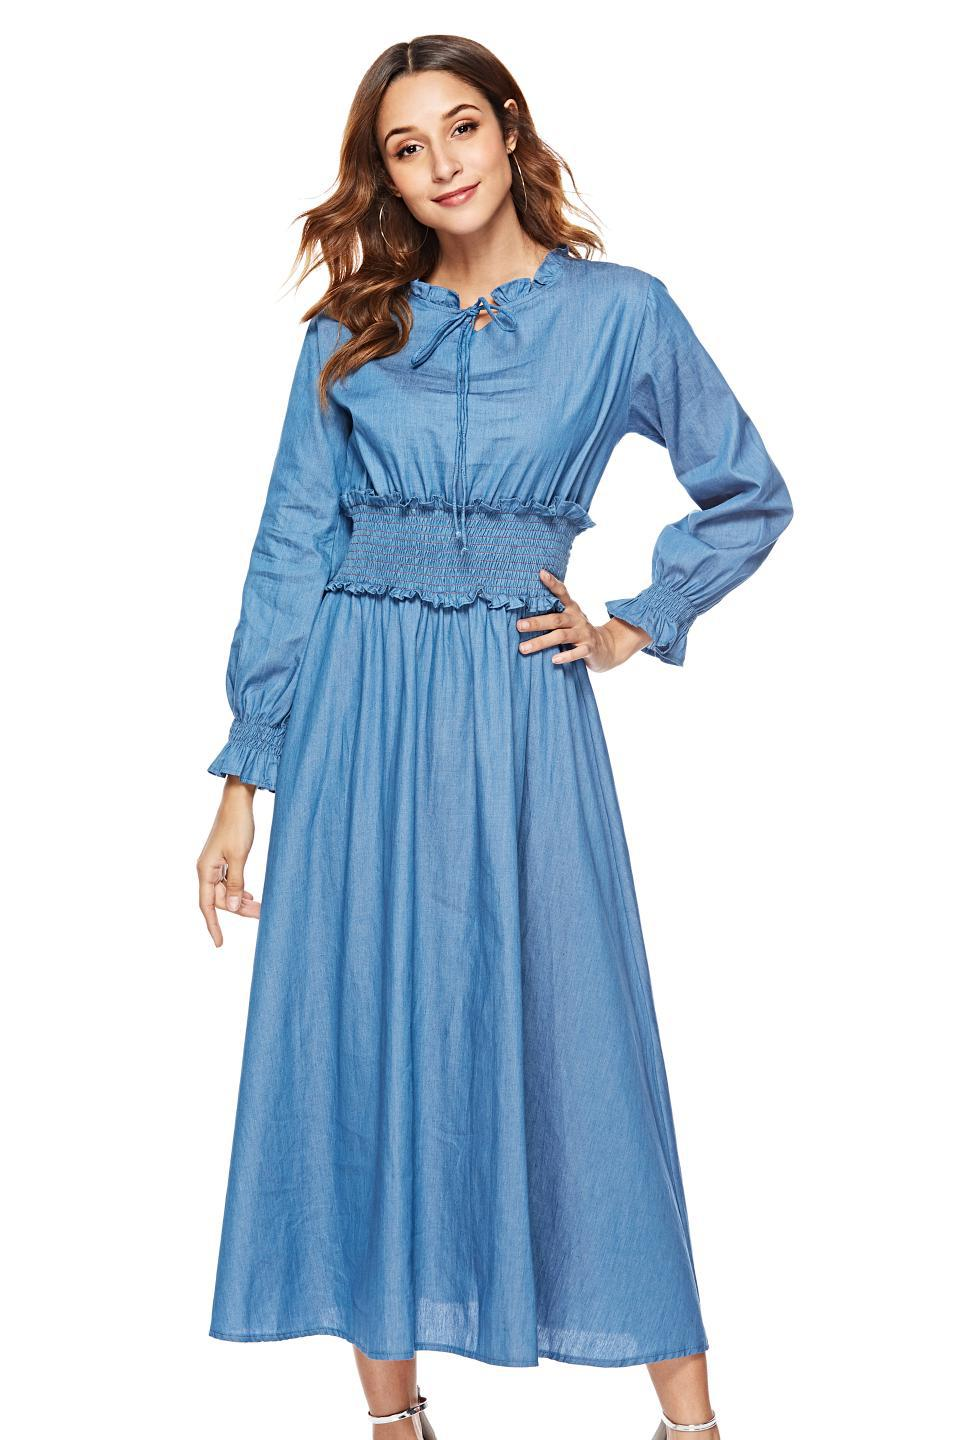 Photo Shoot European And American-Style Long Cowboy Waist Hugging Dress 1845